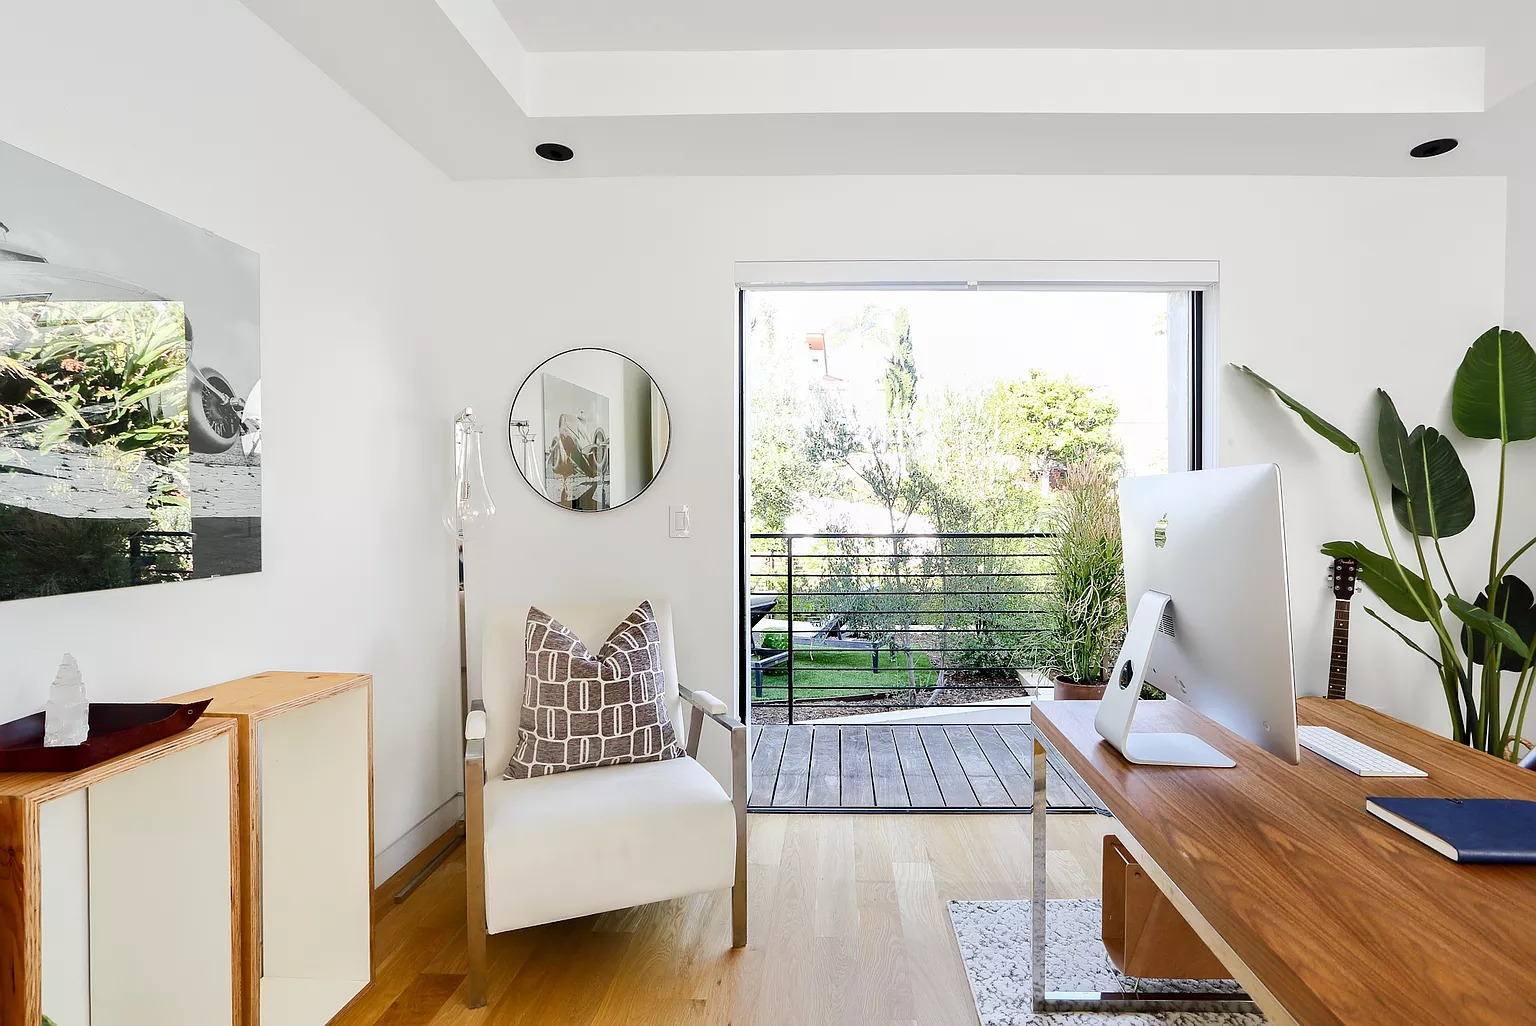 902 Berkeley St, Santa Monica, CA 90403 - $5,995,000 home for sale, house images, photos and pics gallery